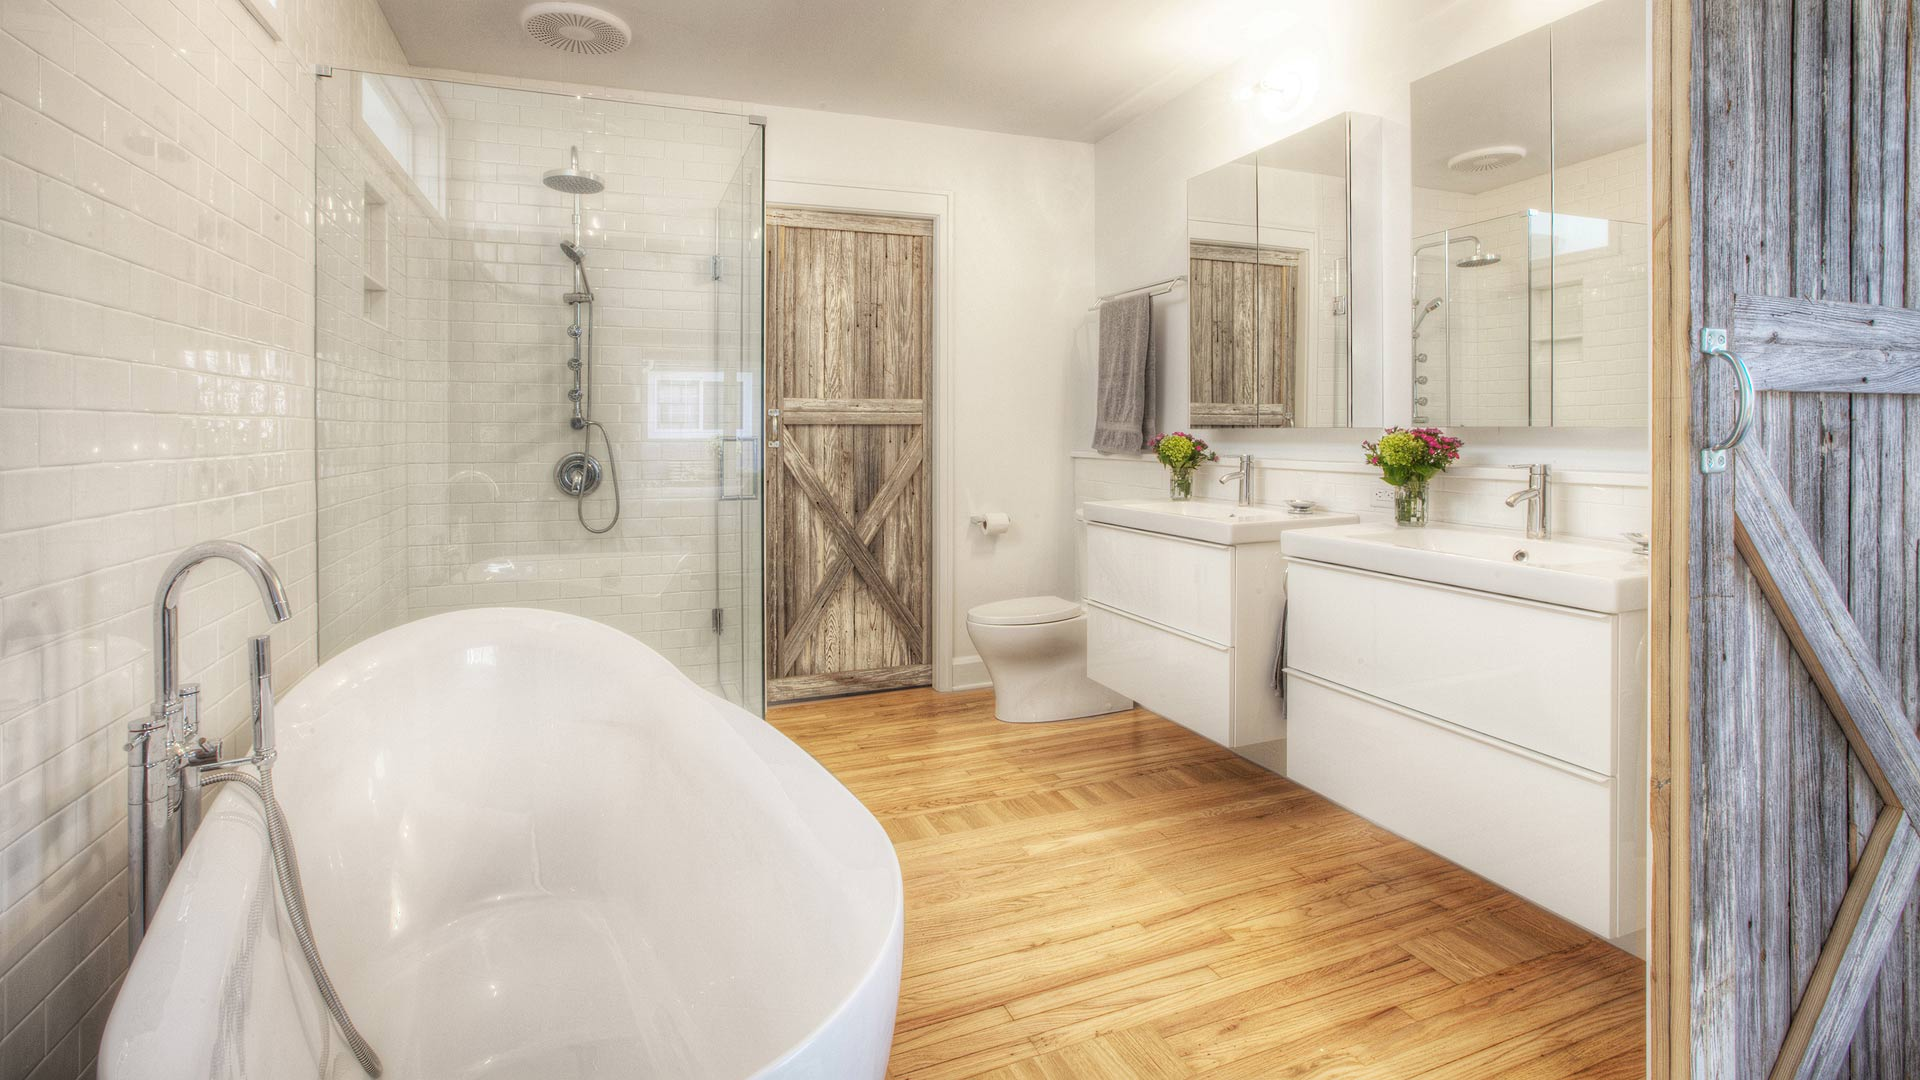 Master Bedroom opens directly to Master Spa via new custom barn doors. Wall hung vanities and freestanding tub coexist nicely with shower, while clerestory window borrows light from skylit middle hallway - Broad Ripple Bungalow Phase 1 - Indianapolis, IN